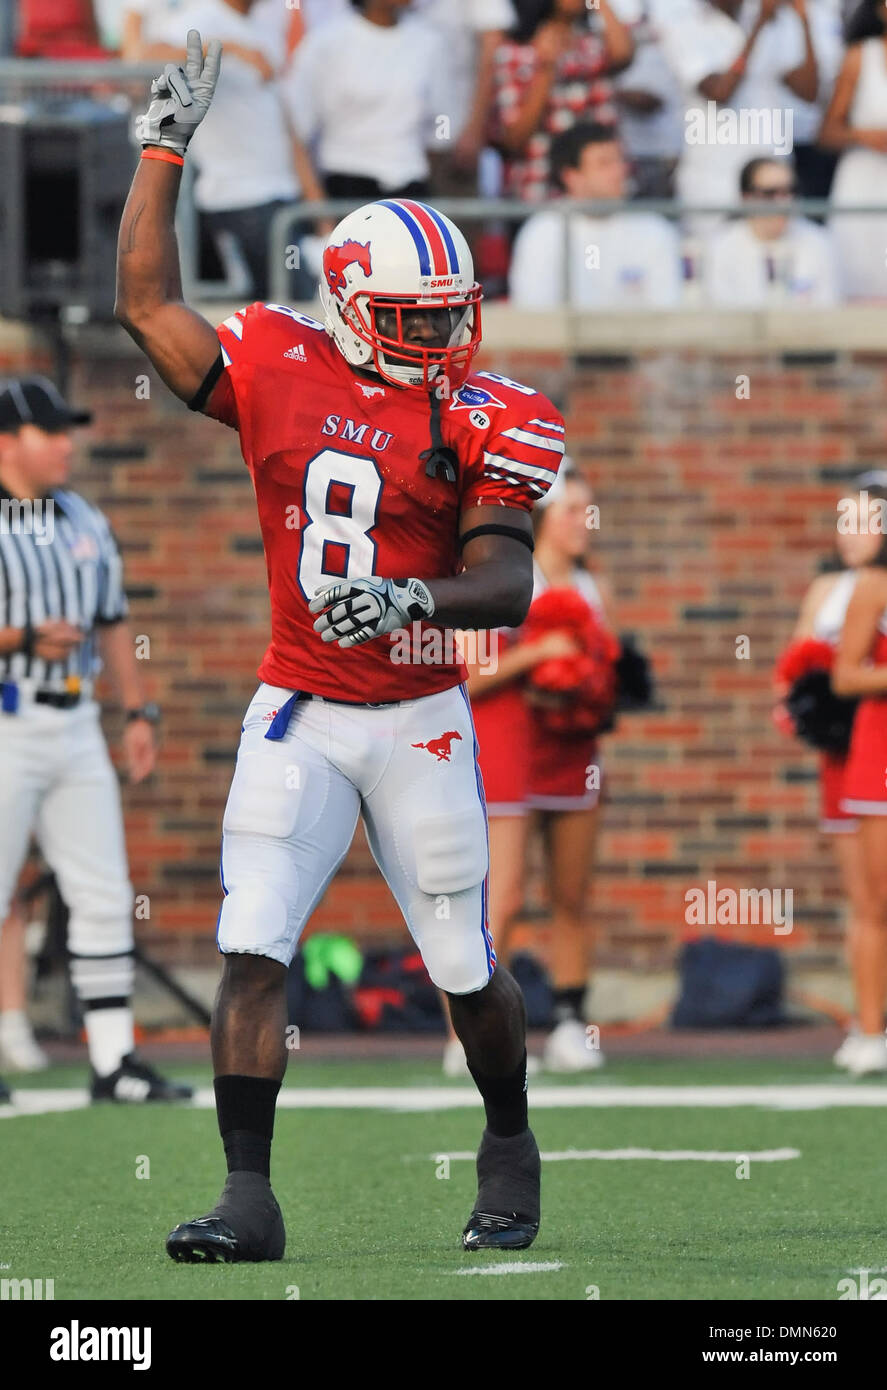 05 SEP 2009:  Stephen F Austin travels to Dallas to face the SMU Ponies in the season kickoff.  With a 4th quarter come back the Ponies win 31-23 over SFA.  SMU's TR #8 Shawnbrey McNeal prepares for the opening kick off against SFA. (Credit Image: © Southcreek Global/ZUMApress.com) - Stock Image